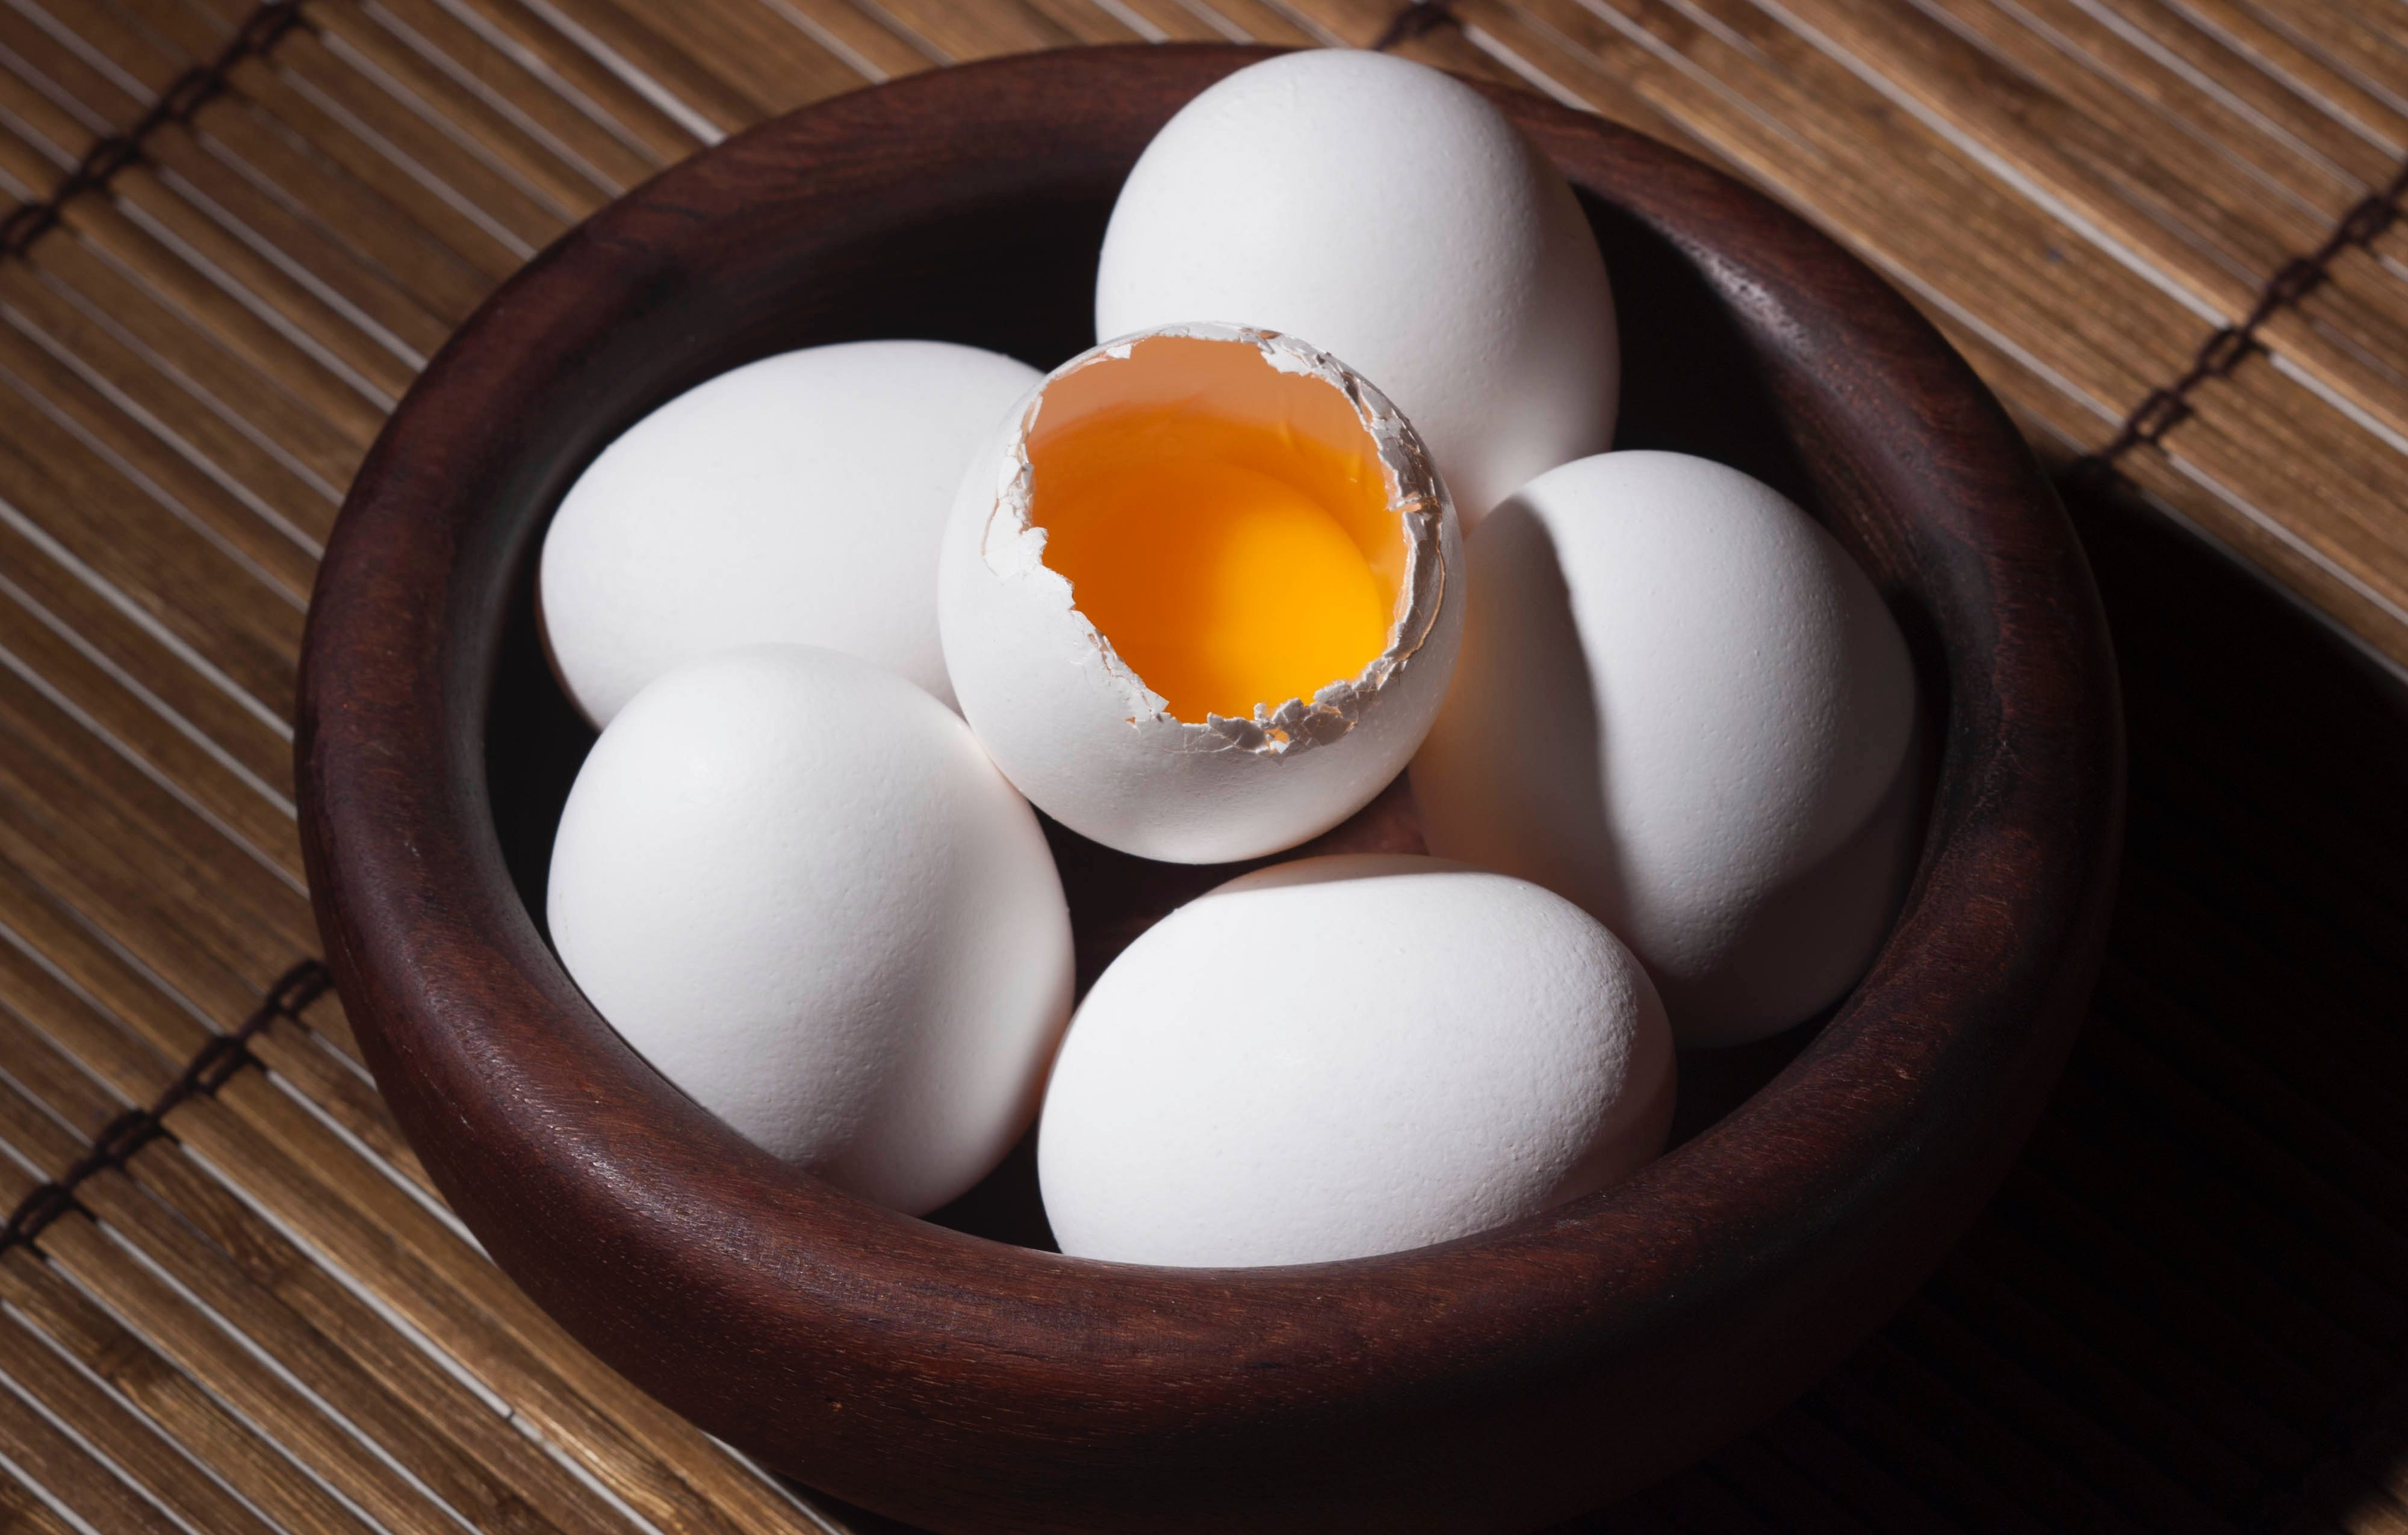 A massive egg recall has resulted from even more sick consumers.